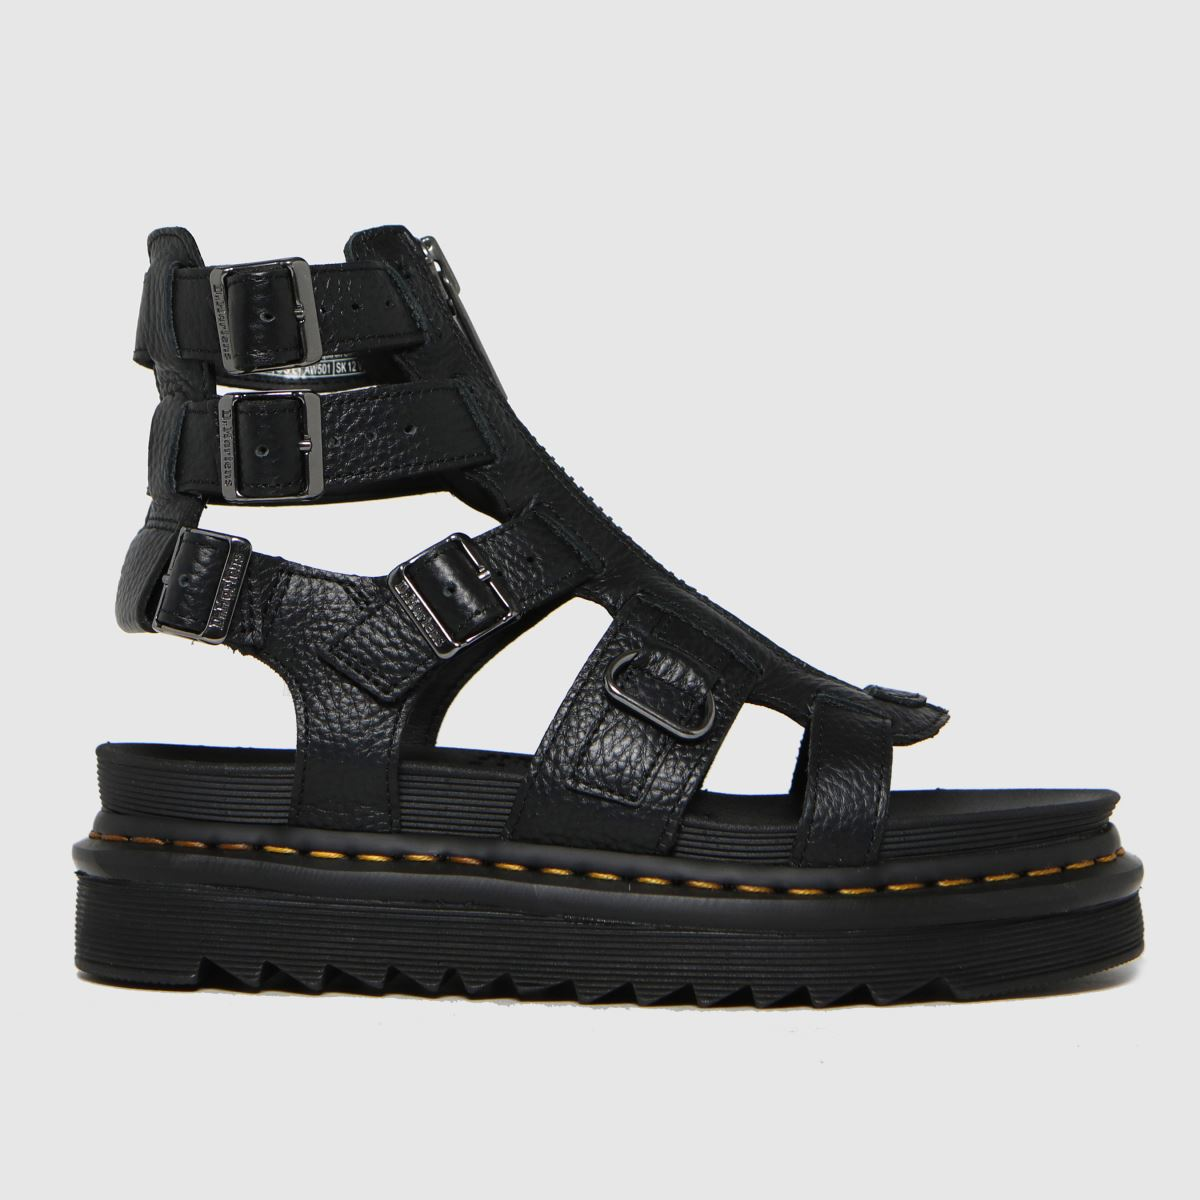 Dr Martens Black Olson Sandals